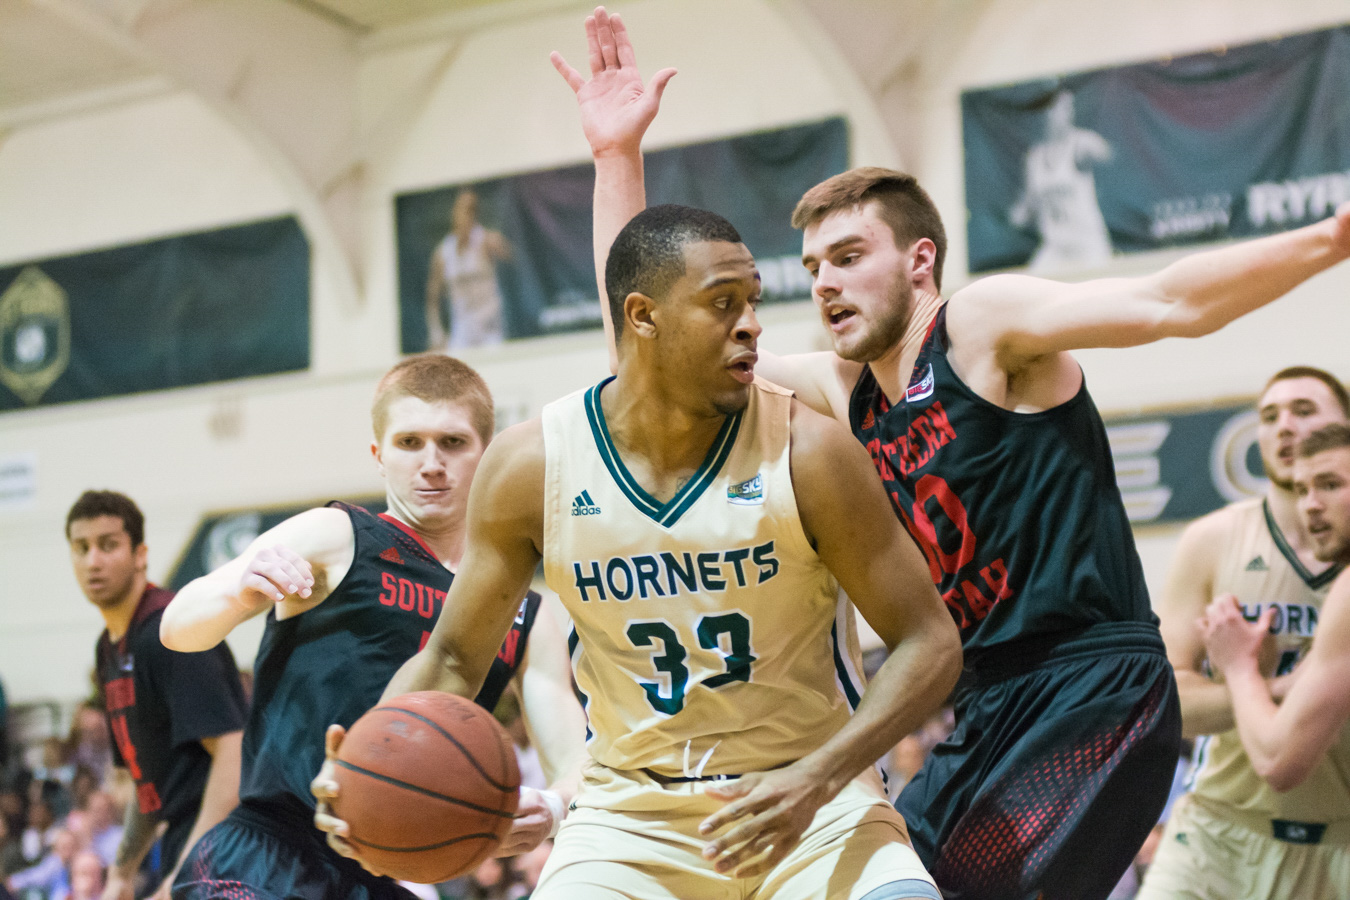 Sacramento State senior forward Nick Hornsby backs down Jacob Calloway of Southern Utah in the post Feb. 26 at the Nest. (Photo by Matthew Dyer)